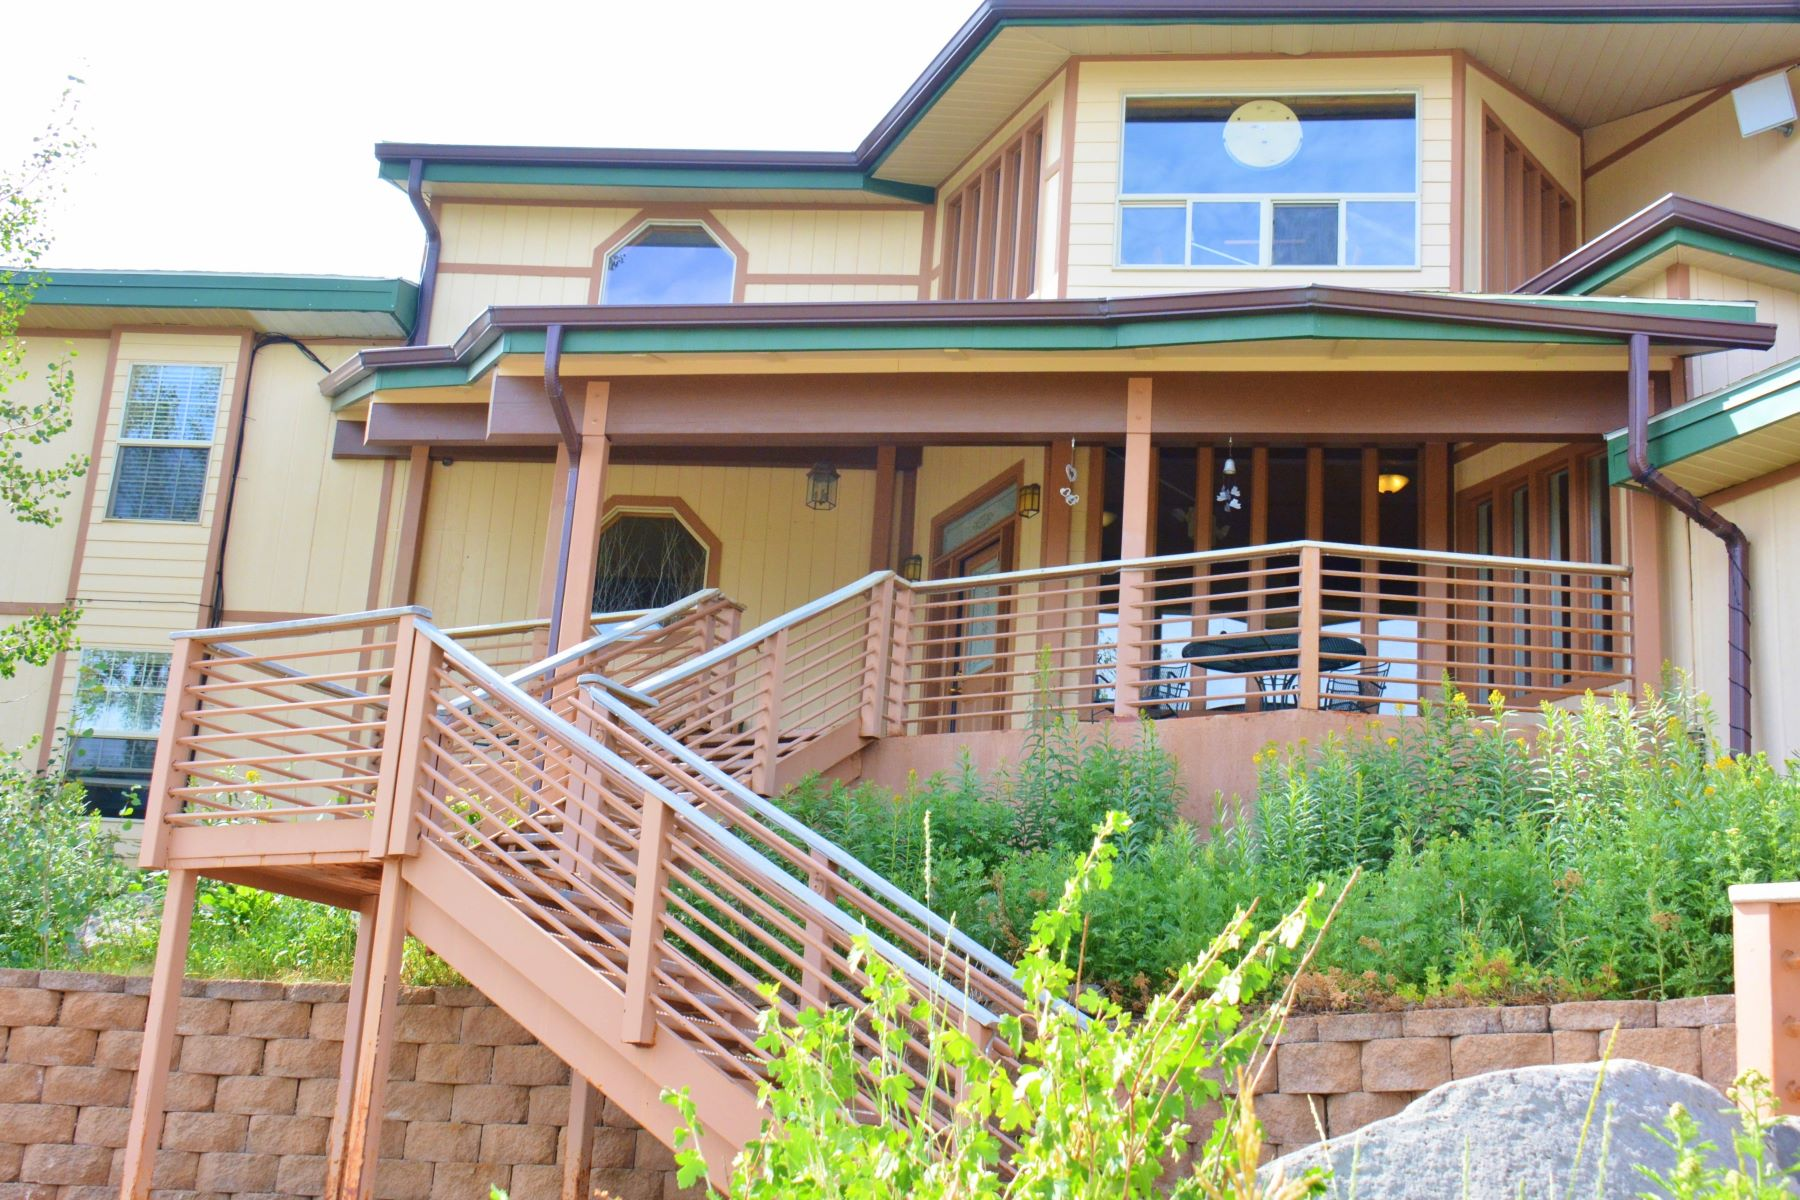 Additional photo for property listing at Le Chateau Powderhorn 48371 Quakie Street Mesa, Colorado 81643 United States